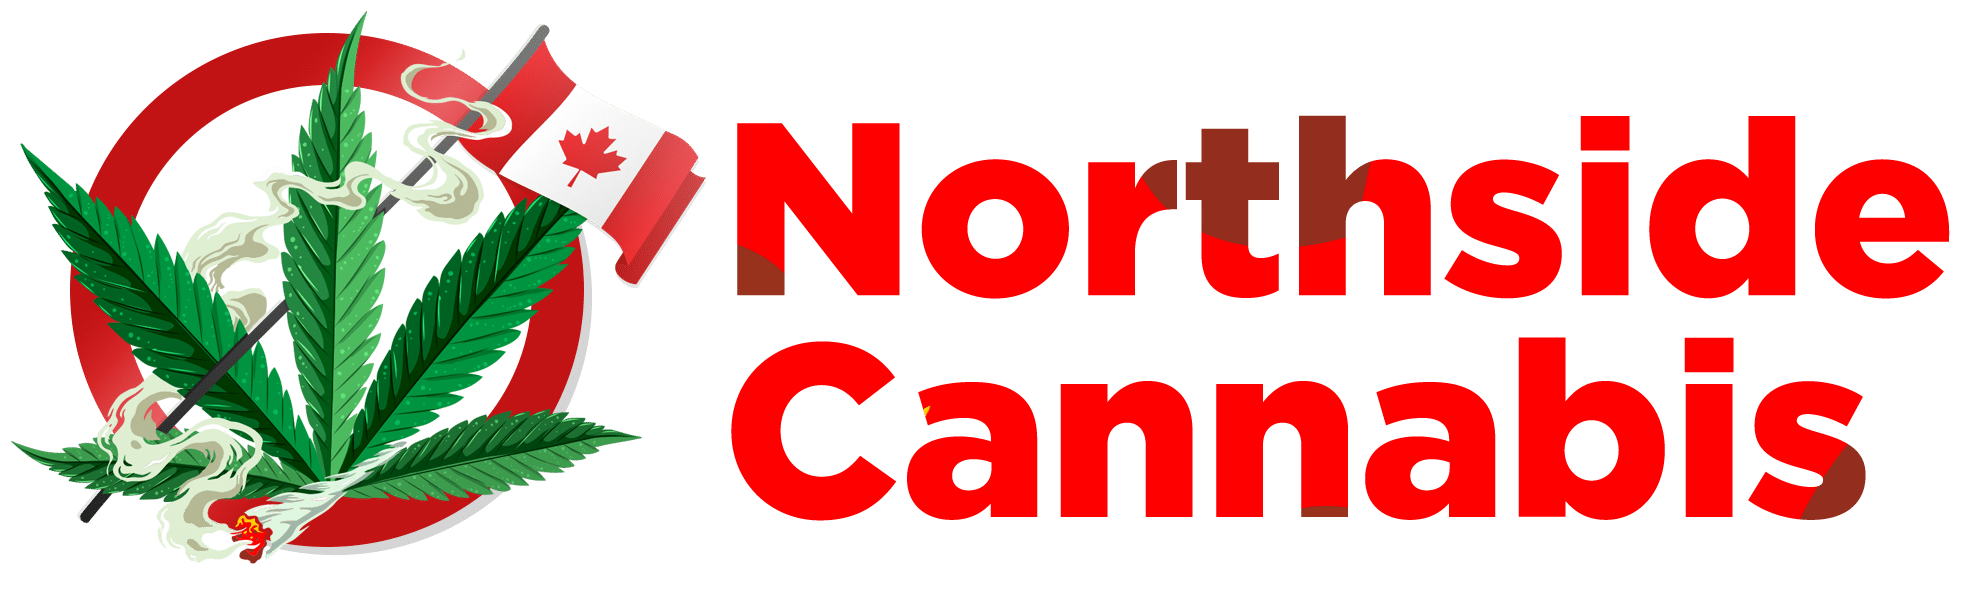 Buy Weed Online in Canada | Northside Cannabis Cannabis Store